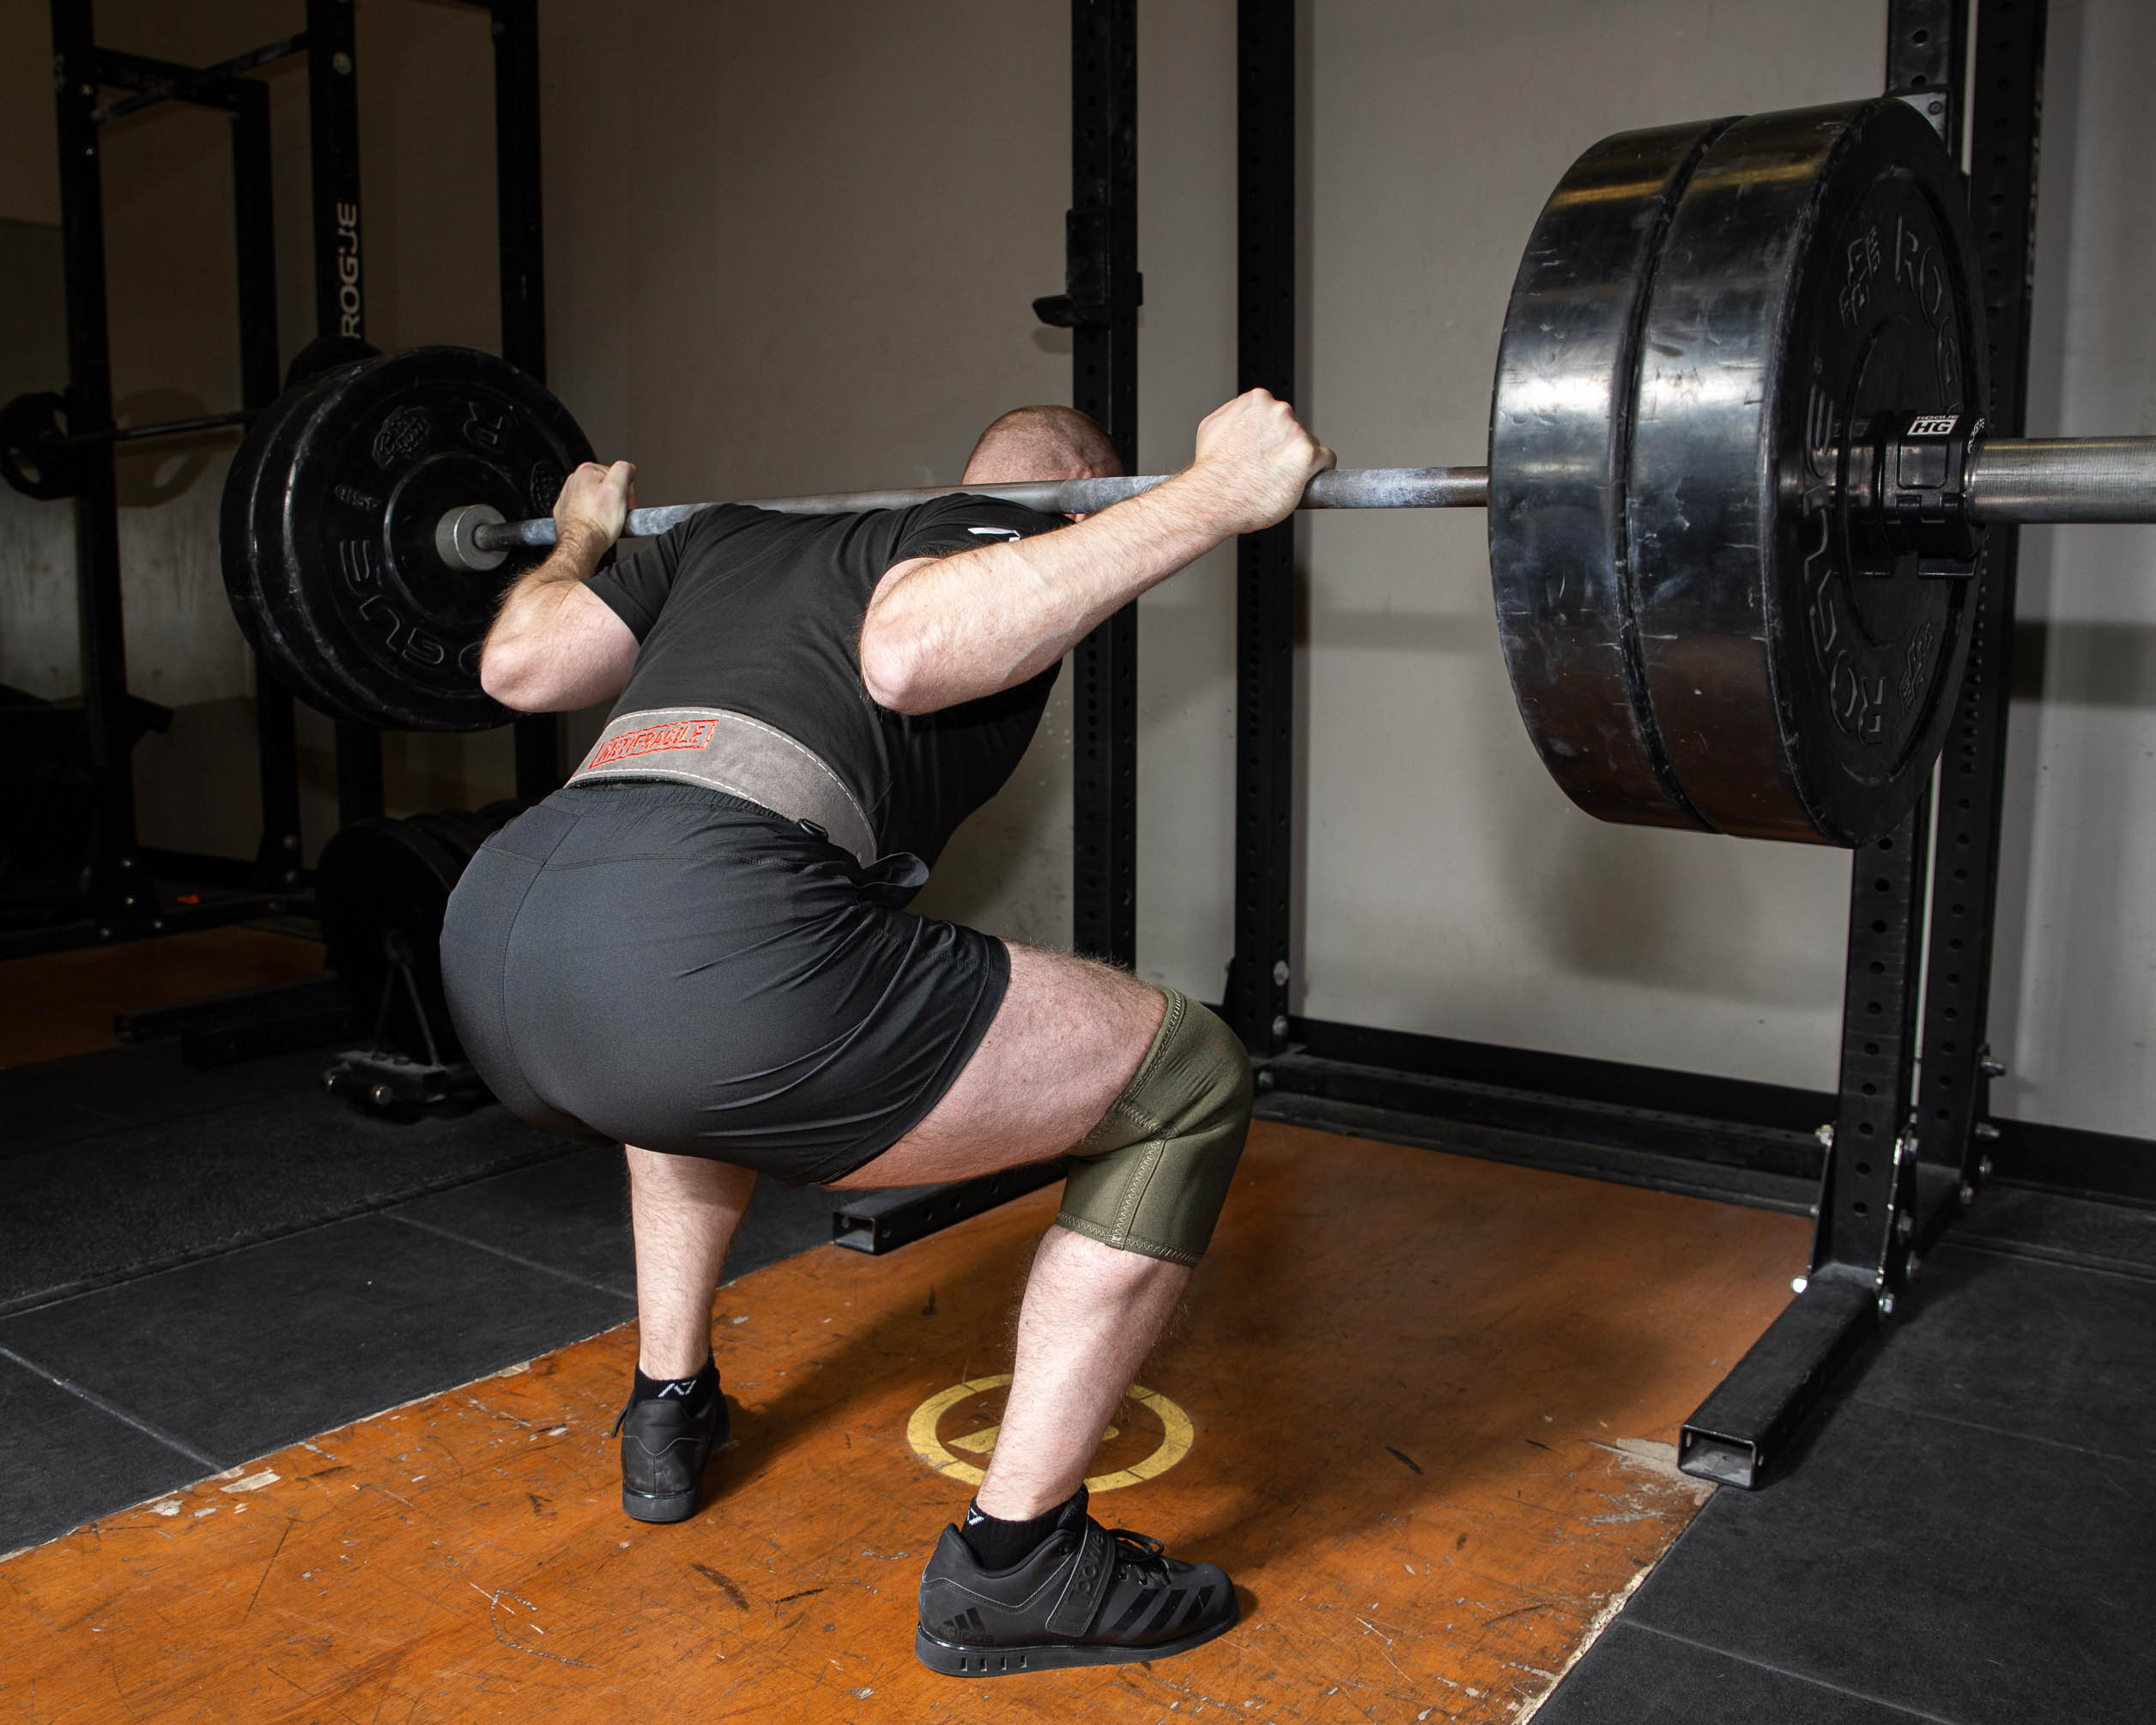 Shorts for barbell squat